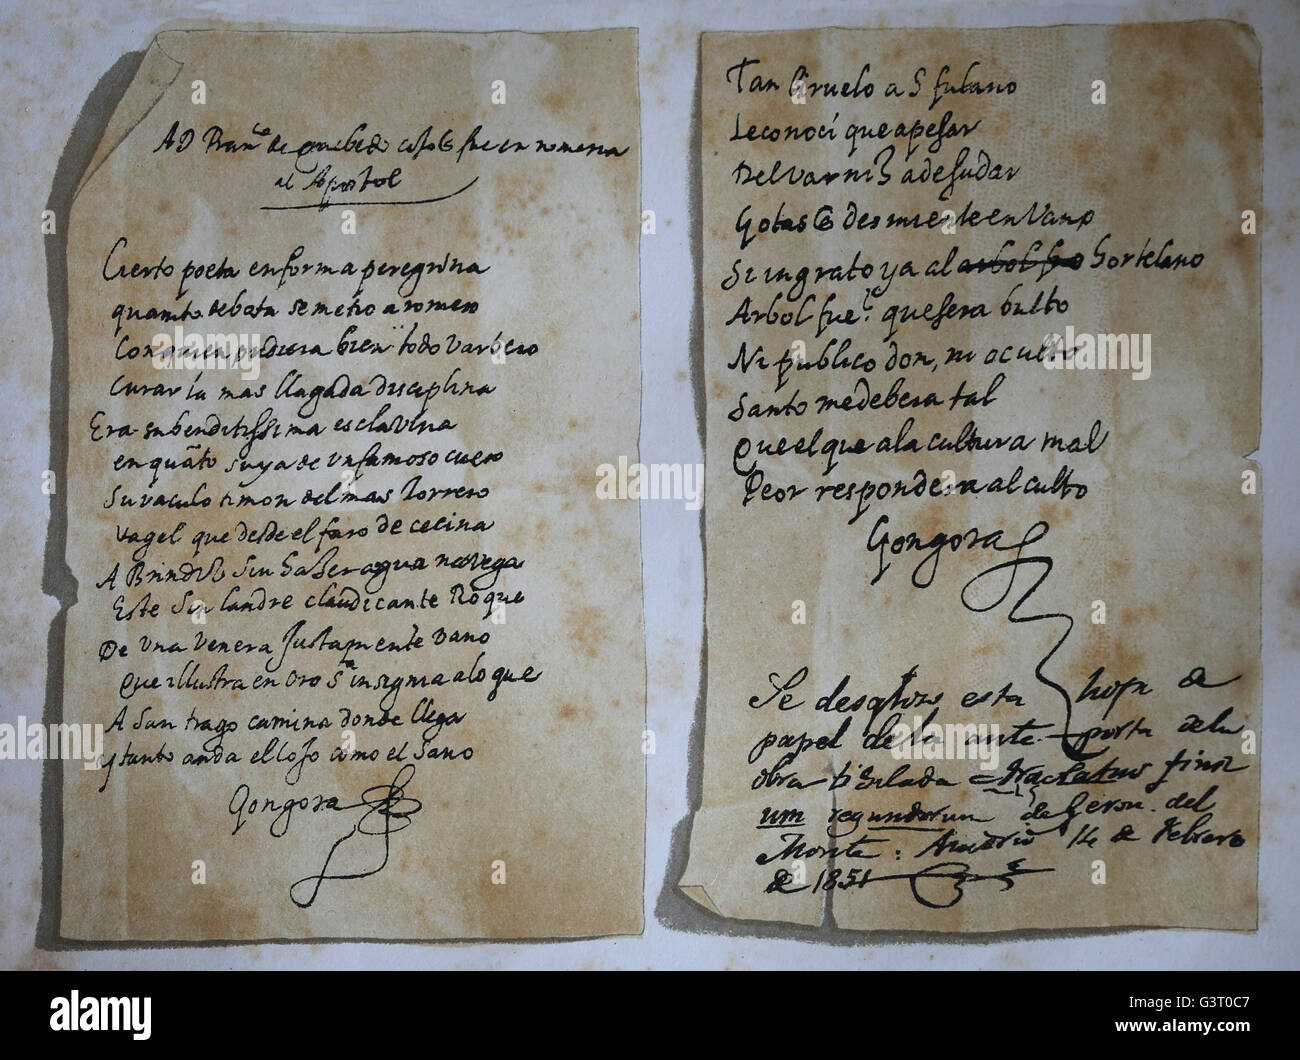 Autograph of Spanish Baroque Luis de Gongora(1561-1627). Lithograply. General History of Spain,1879. - Stock Image